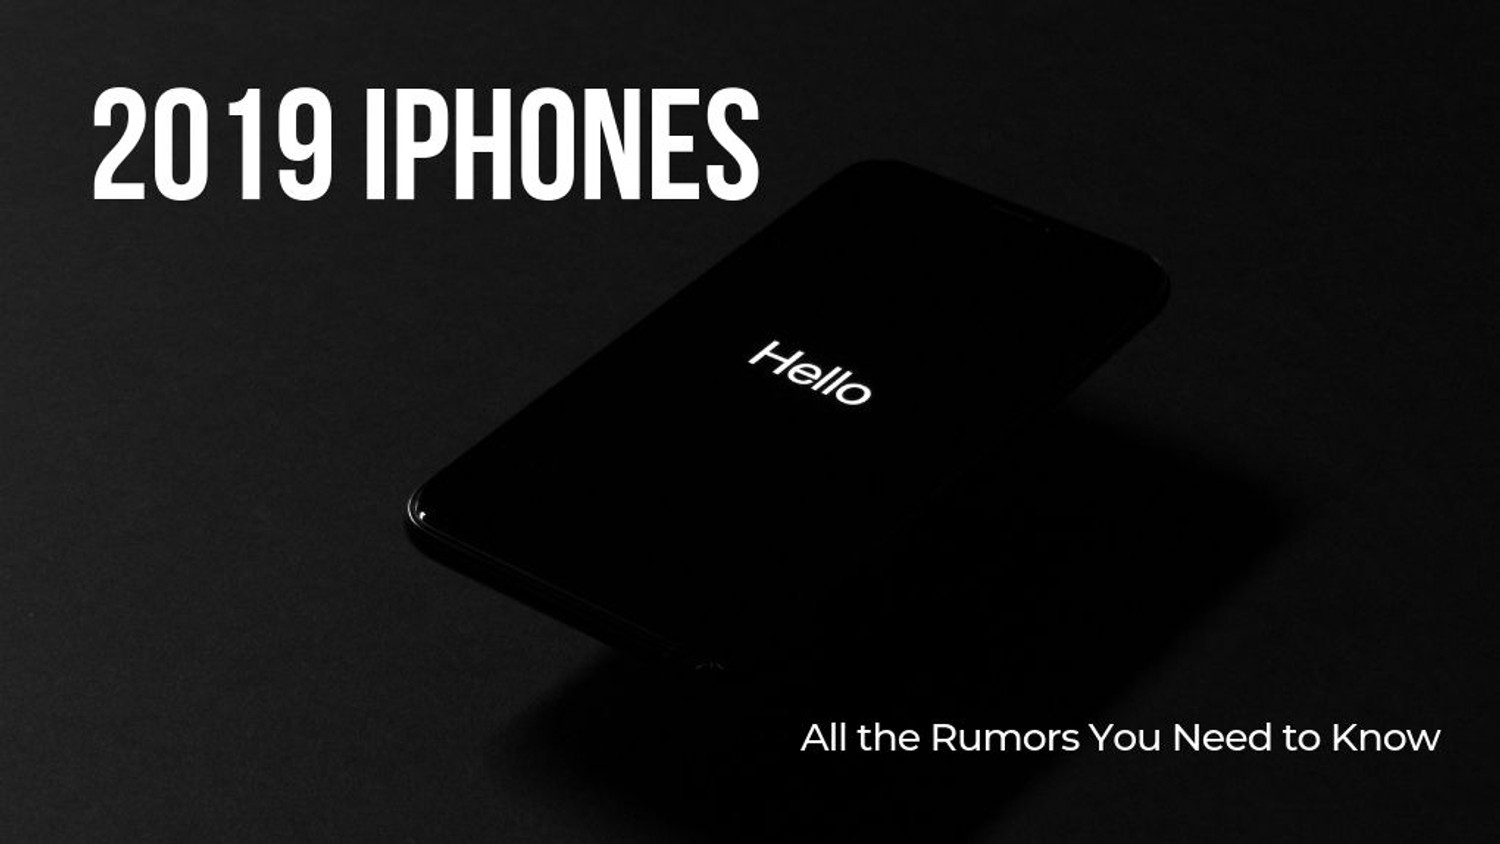 2019 iPhones: All the Rumors You Need to Know